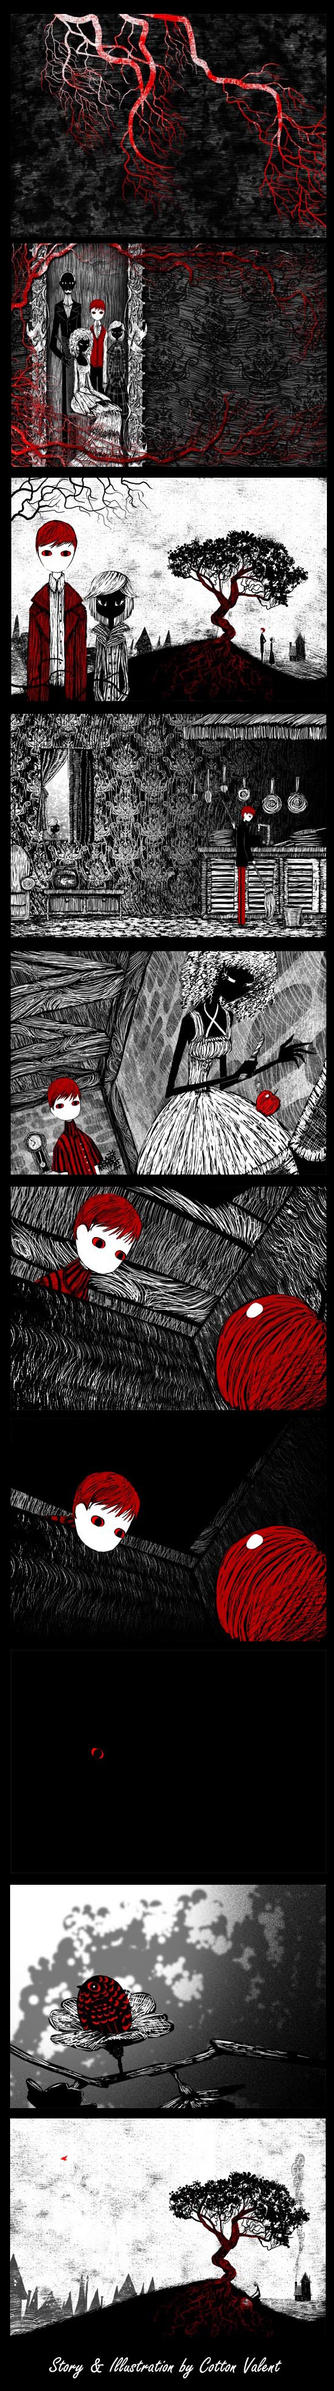 Red Fable - 00 The Robin by CottonValent